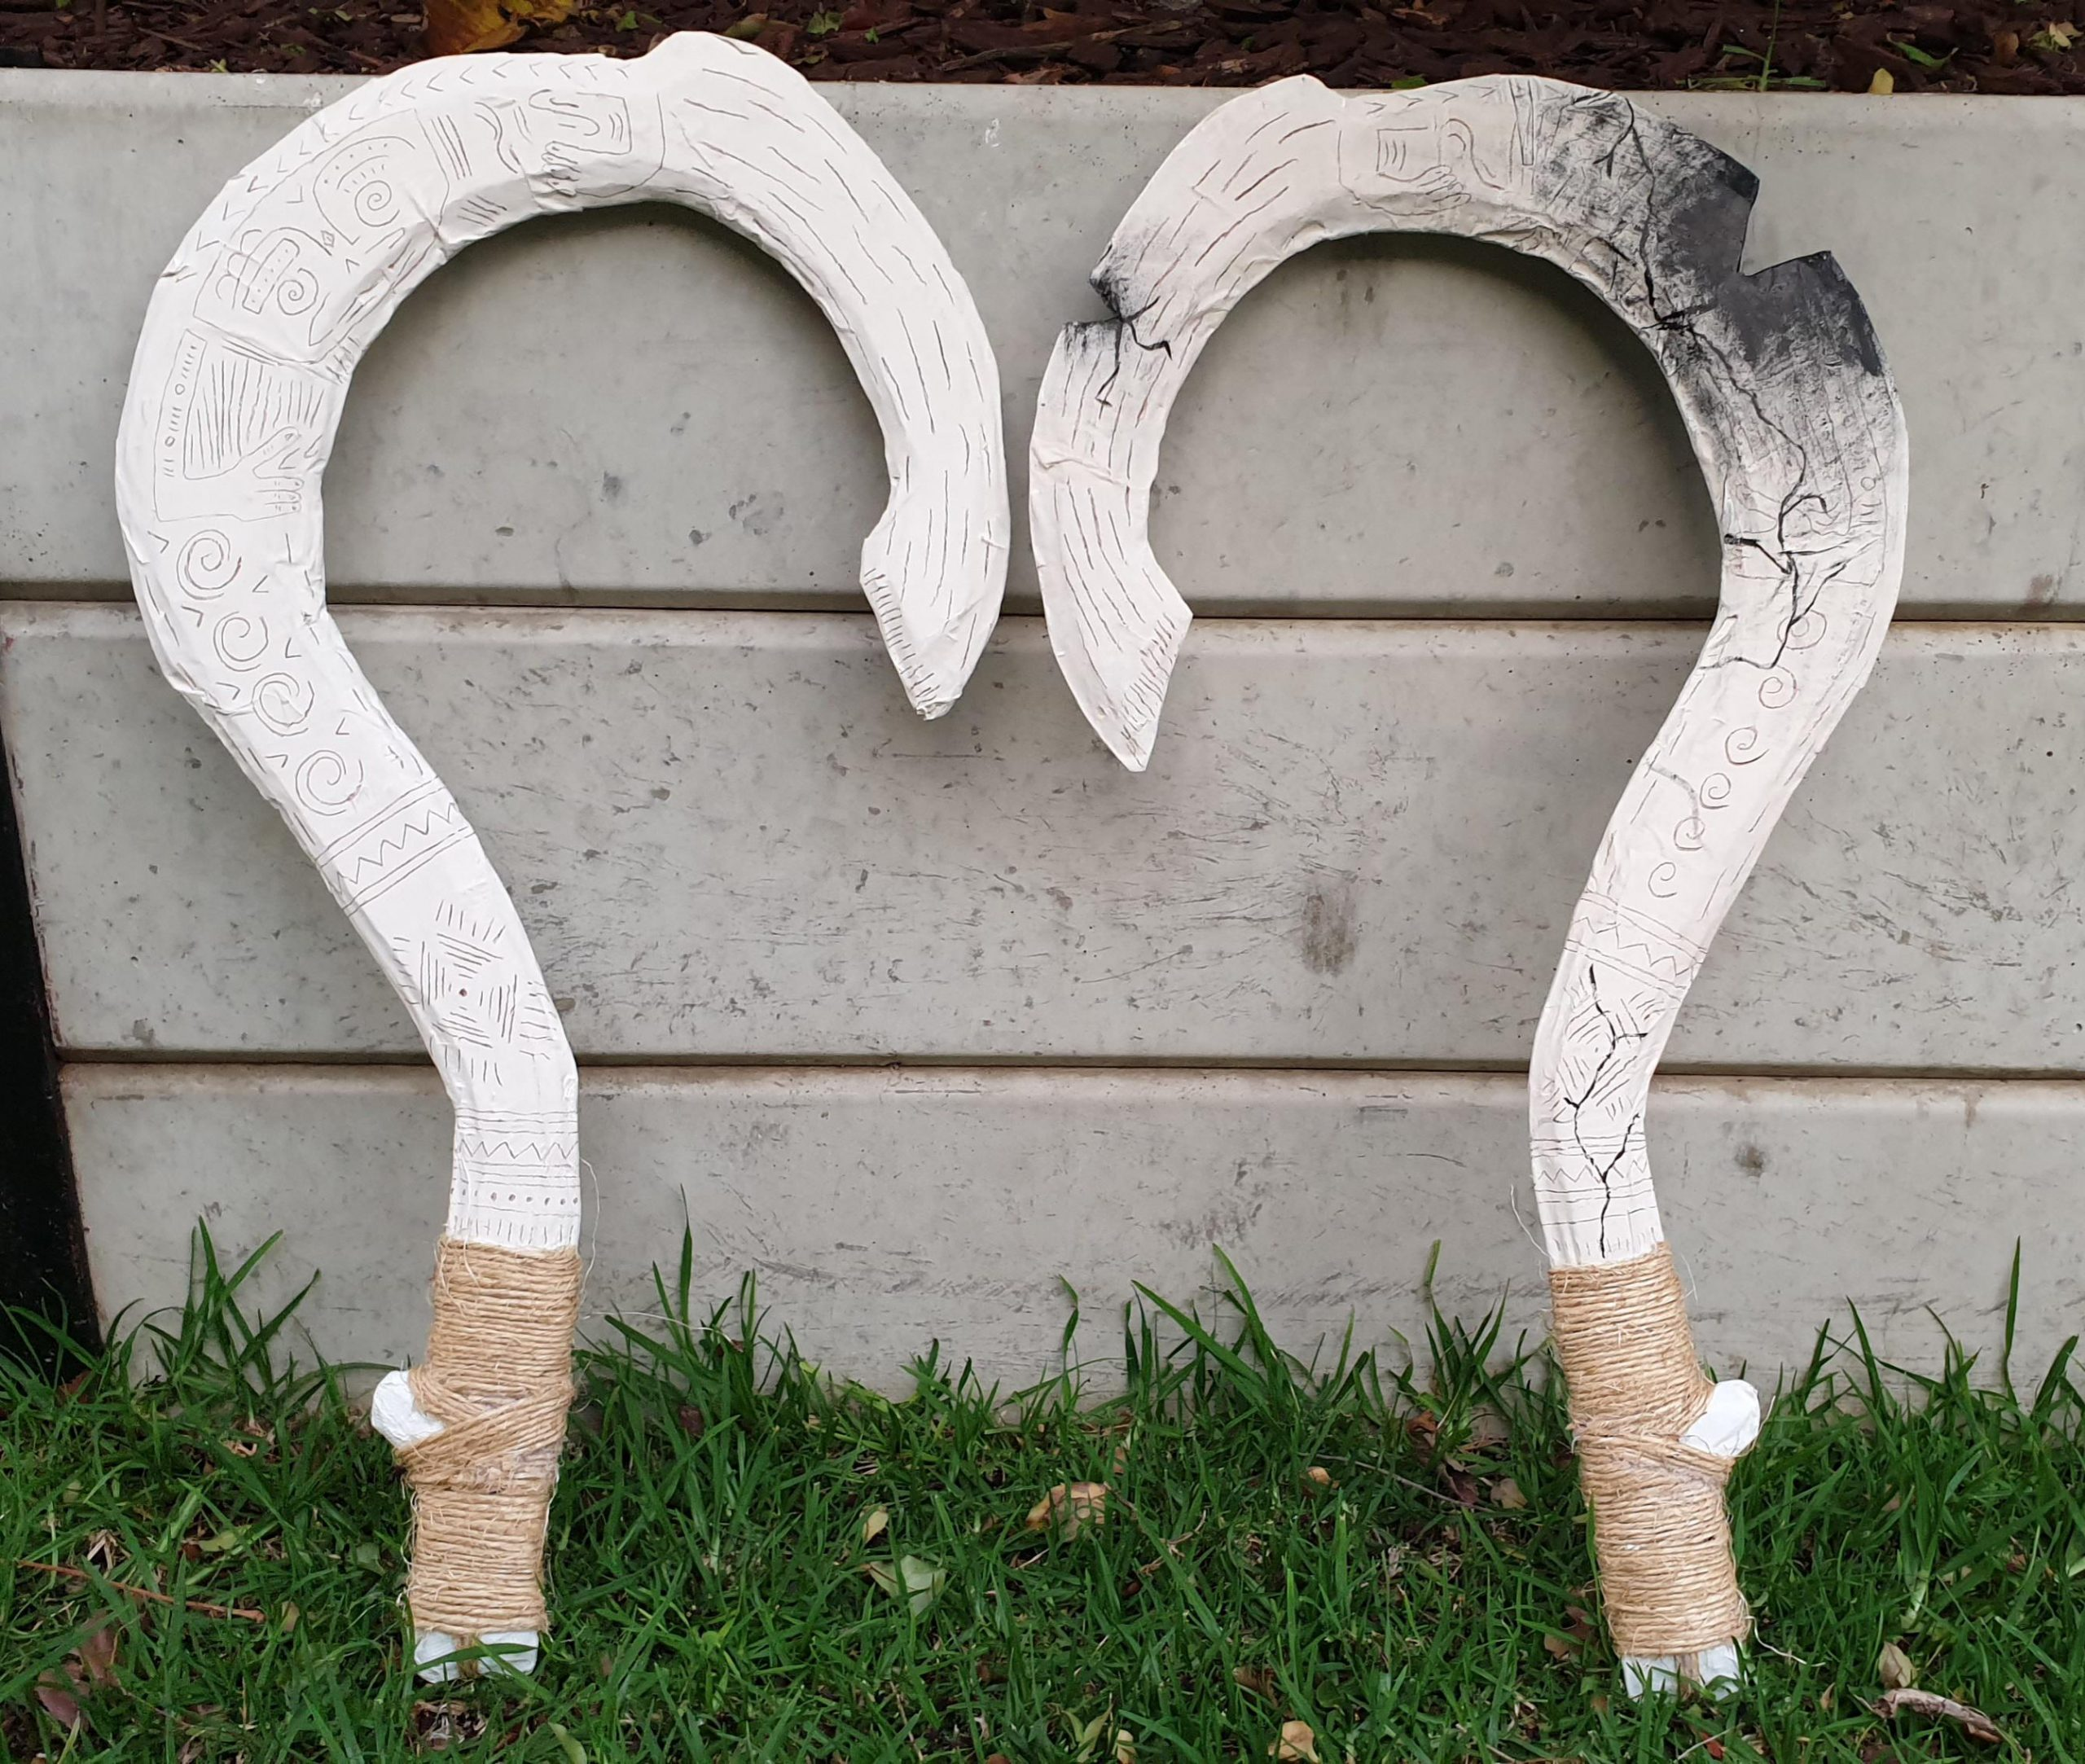 xwxr2ax4jqr51 scaled - Maui's hooks for my work production of Moana (cardboard and paper mache). I'm the unofficial prop maker while I work on admin, and I'm pretty proud of this one! - hobbies, crafts